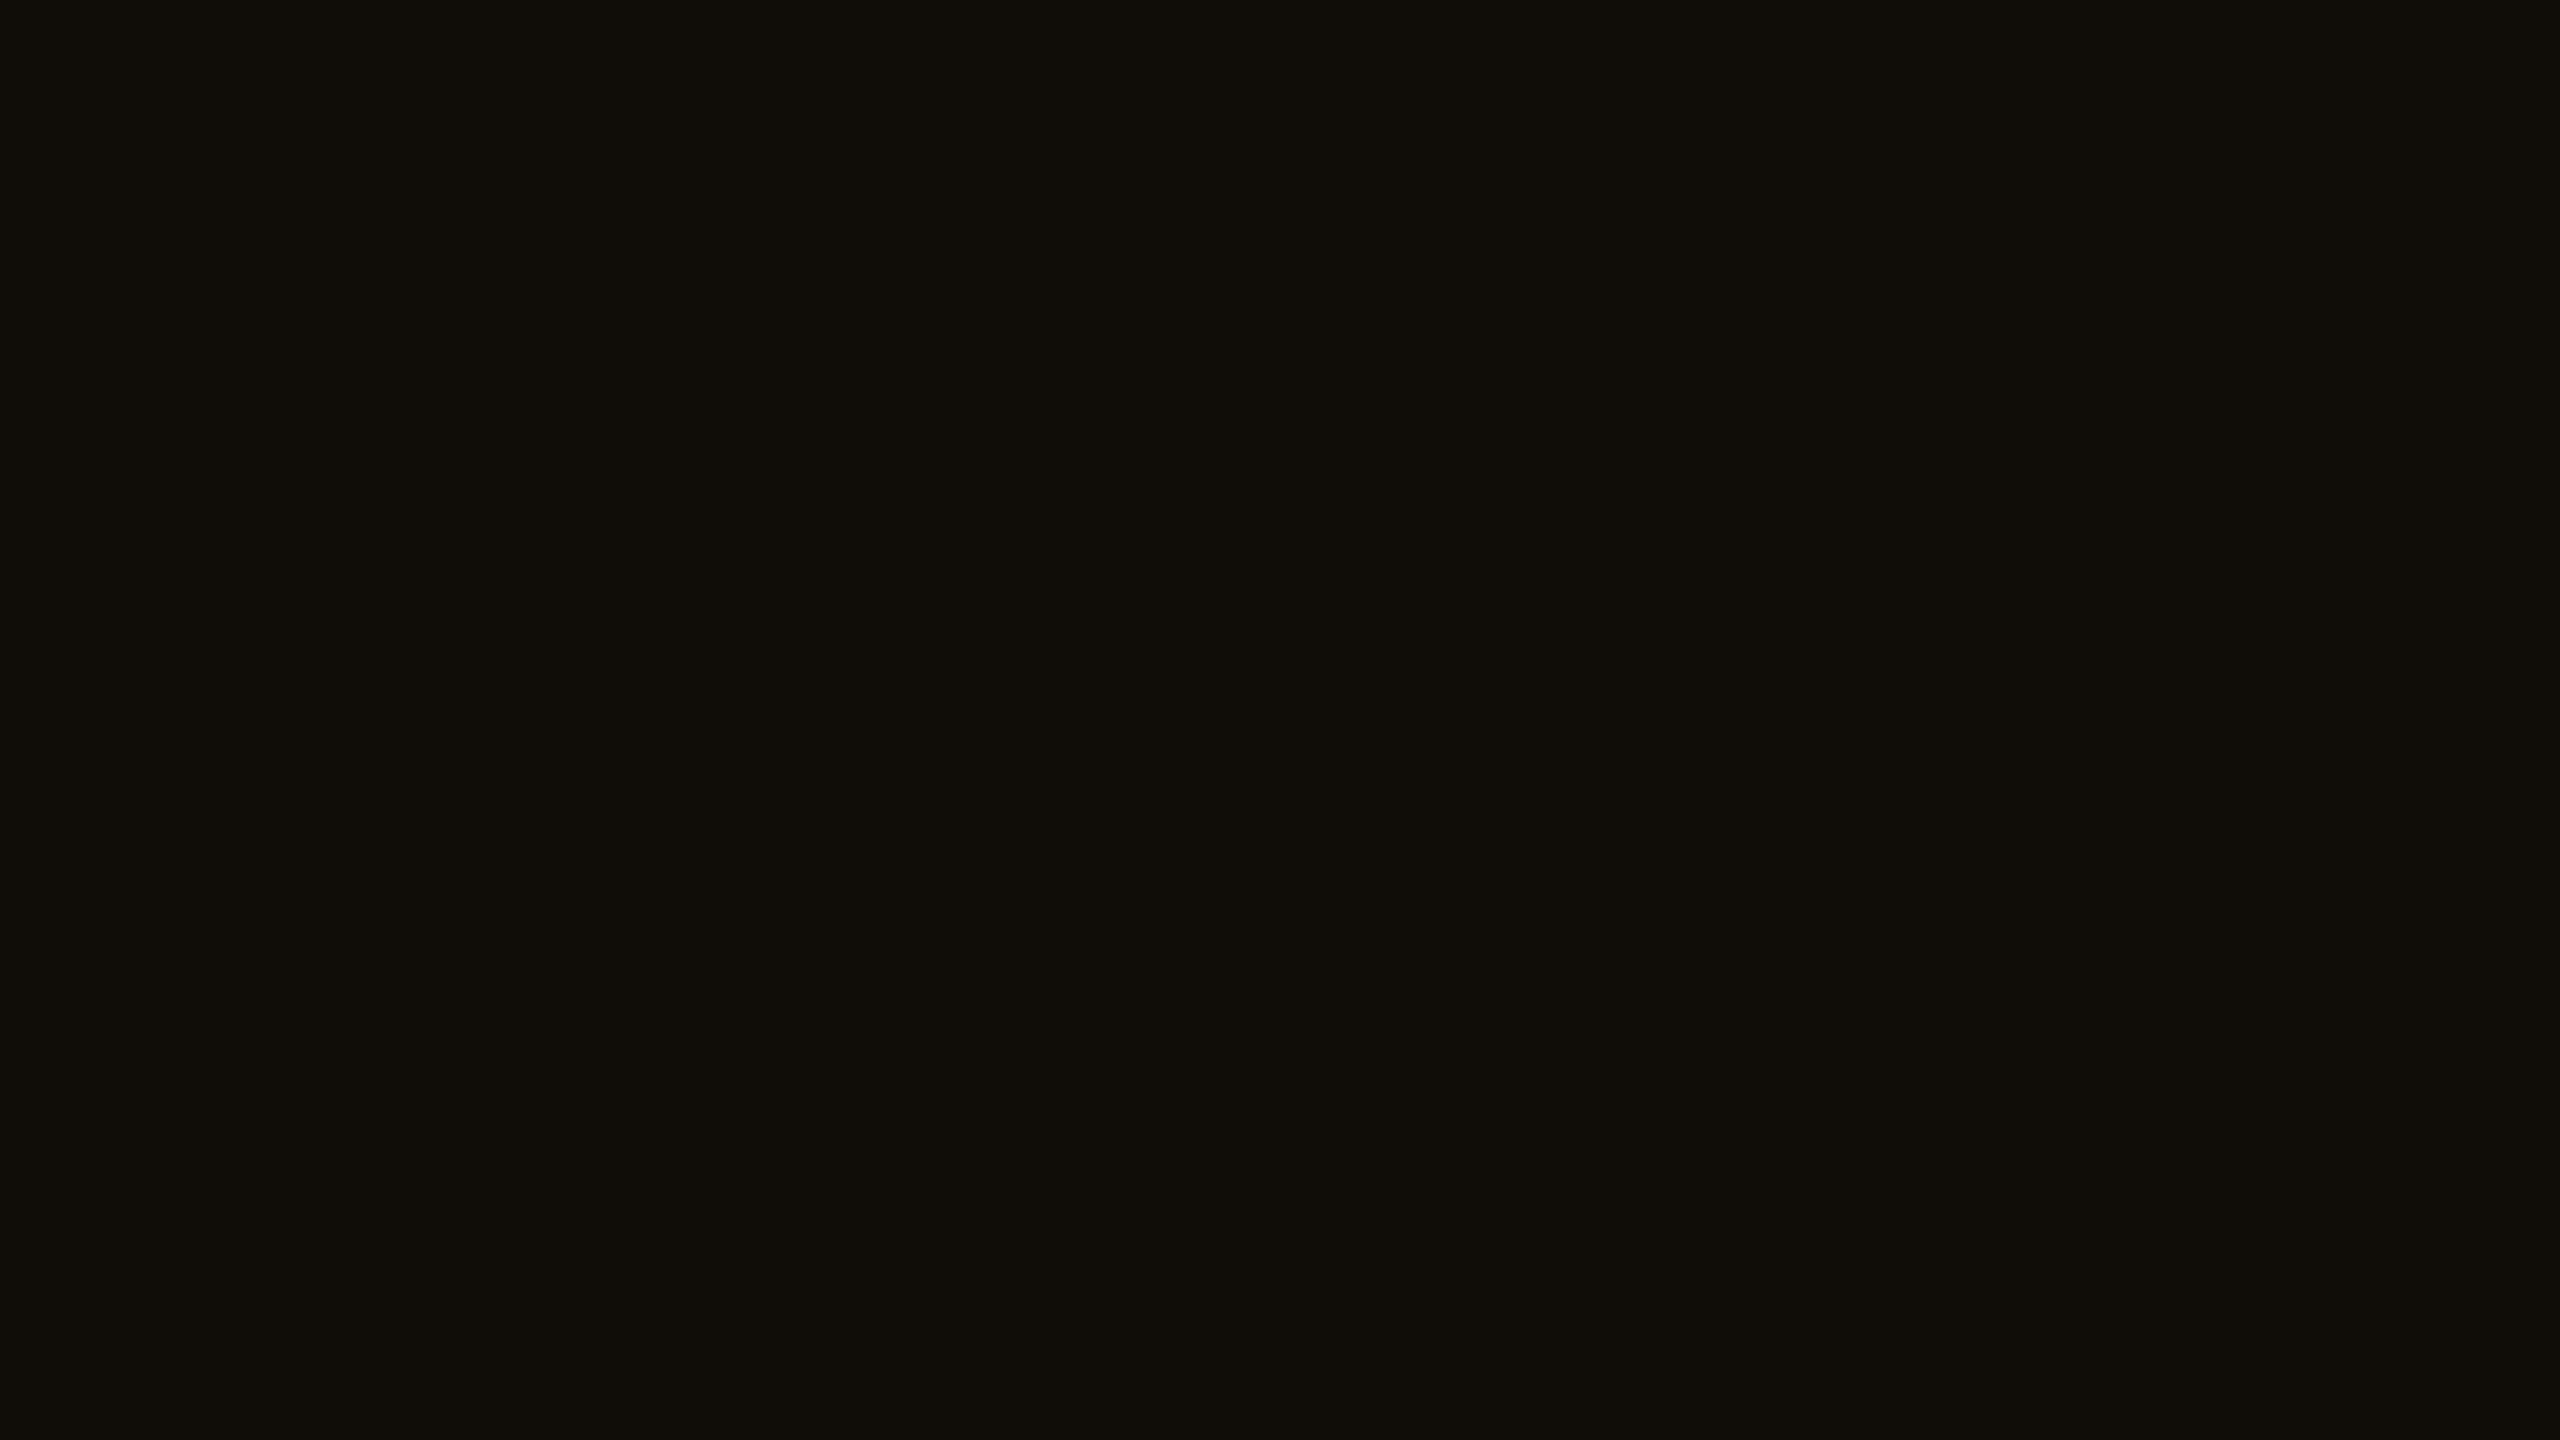 2560x1440 resolution Smoky Black solid color background view and 2560x1440